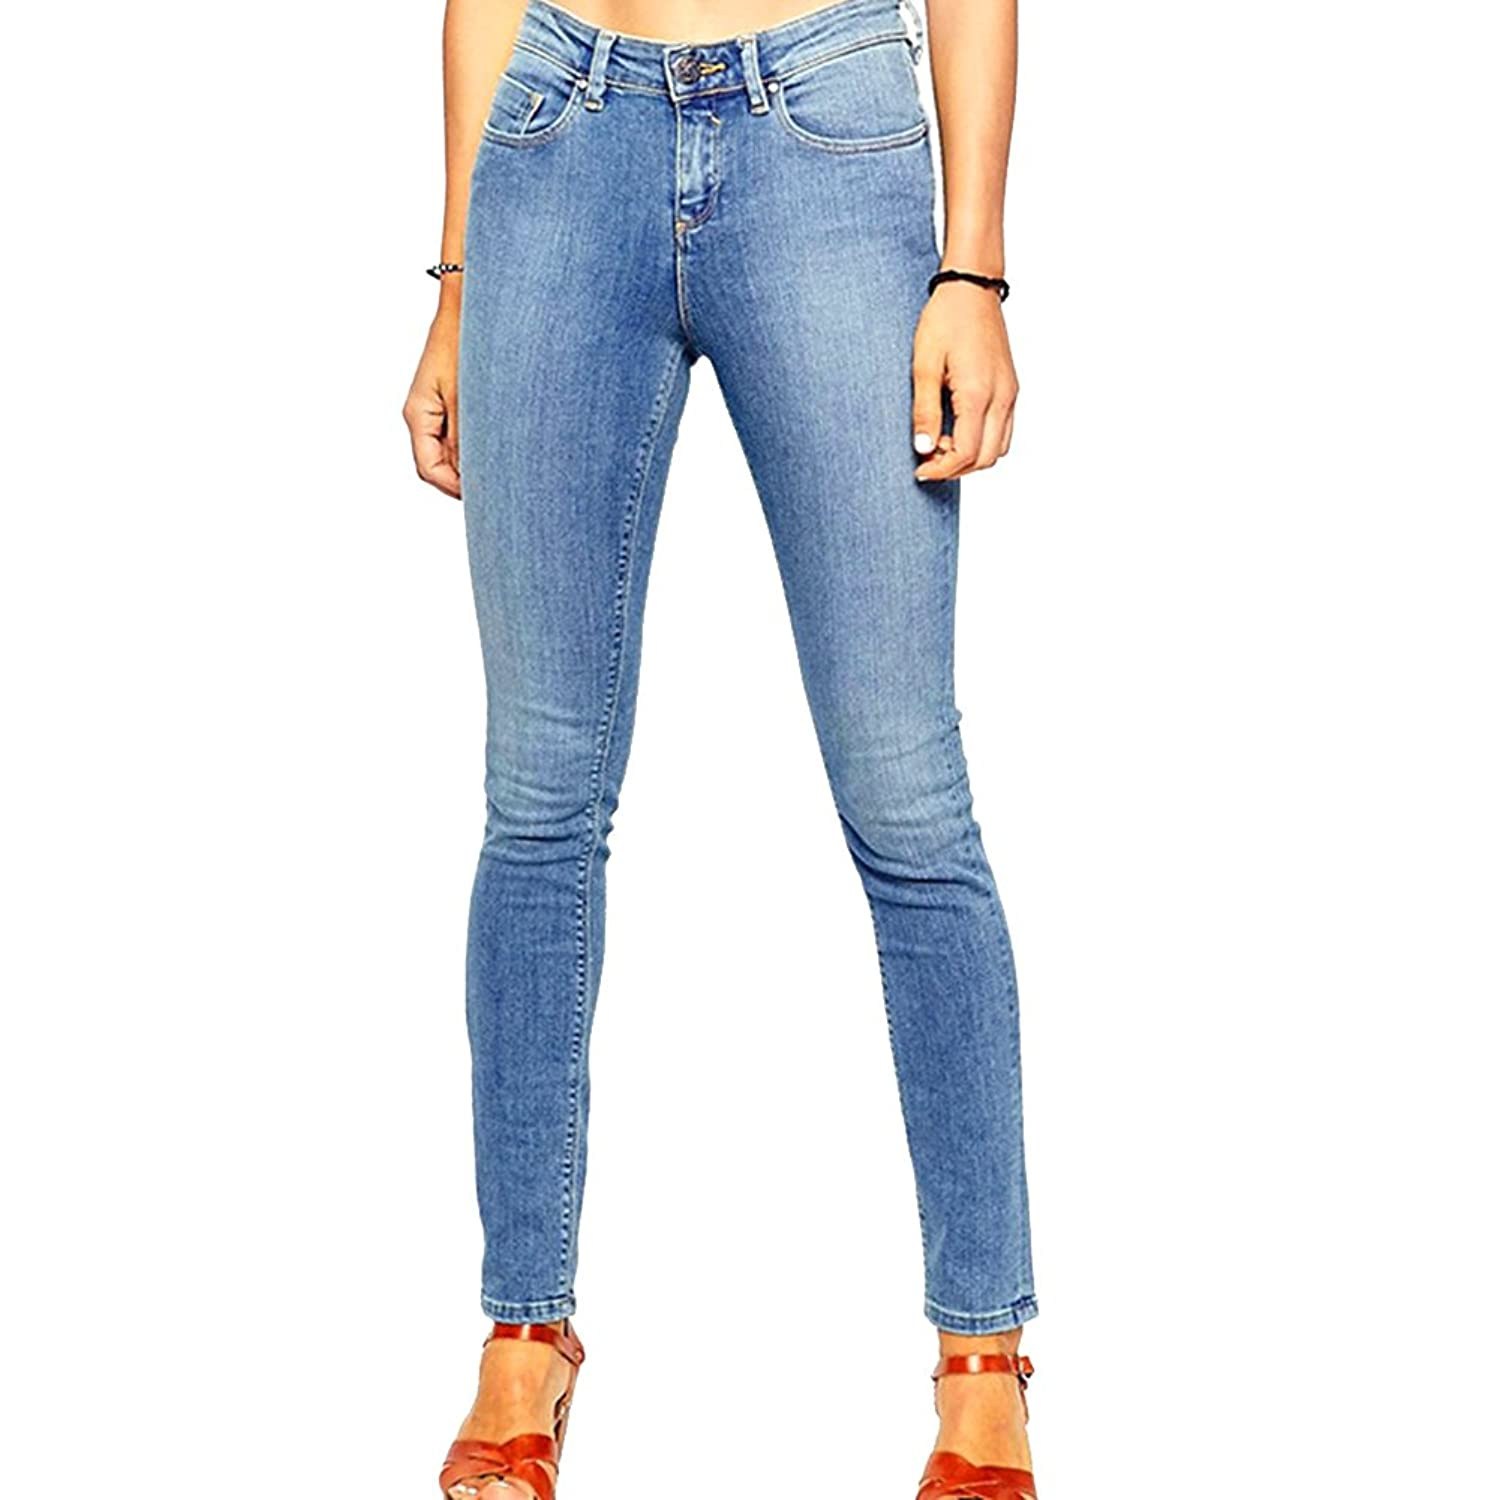 Haogo Womens Mid Rise Stretch Denim Pencil Jeans